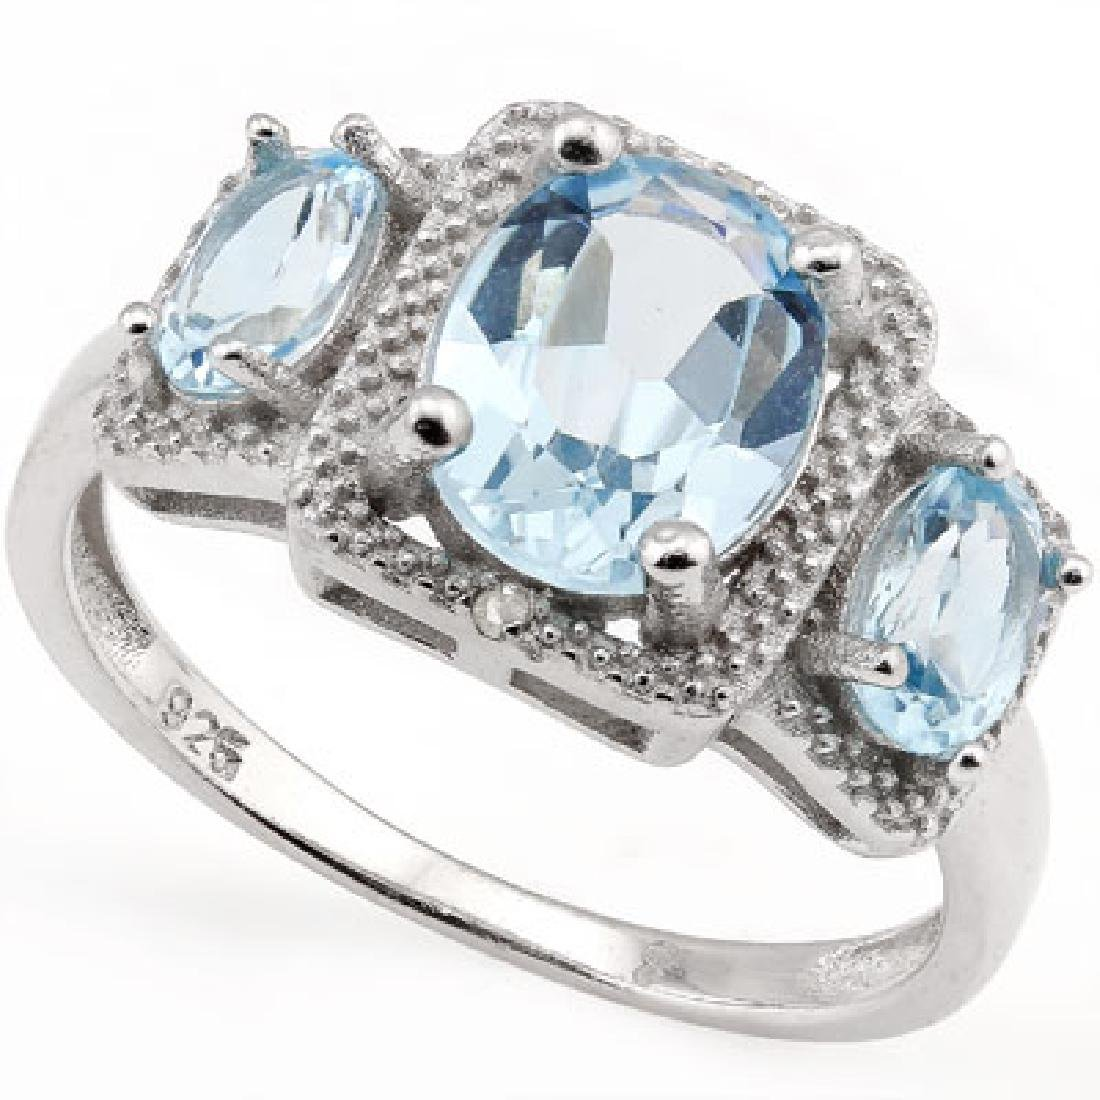 3.51 CARAT TW BLUE TOPAZ & BLUE TOPAZ PLATINUM OVER 0.9